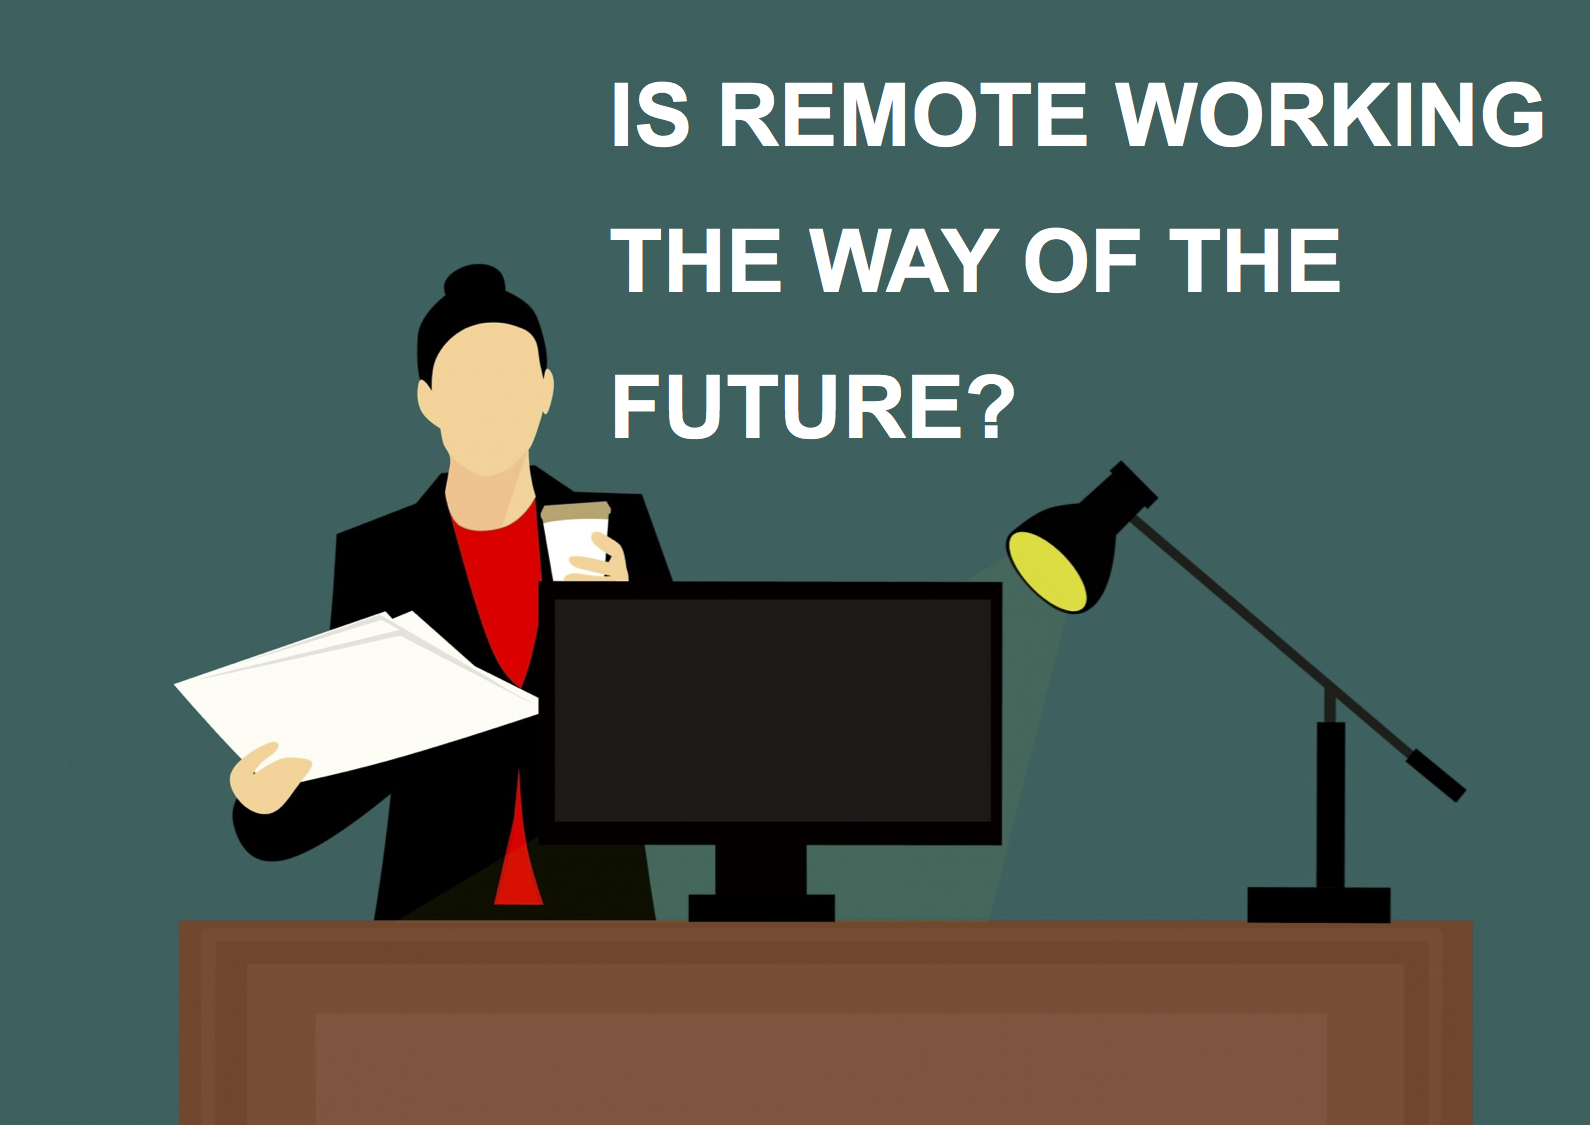 A clipart style graphic. A dark sea green solid background. In the centre is a brown desk with a black computer screen in the centre and a black mental lamp to the right with a yellow bulb that points in the direction of the computer. Behind the screen stands a woman in a black suit with a red top and dark hair tied in a bun. She holds blank pieces of paper in her right hand, and a coffee cup in her left hand. Above this image in white text reads 'Is remote working the way of the future?'